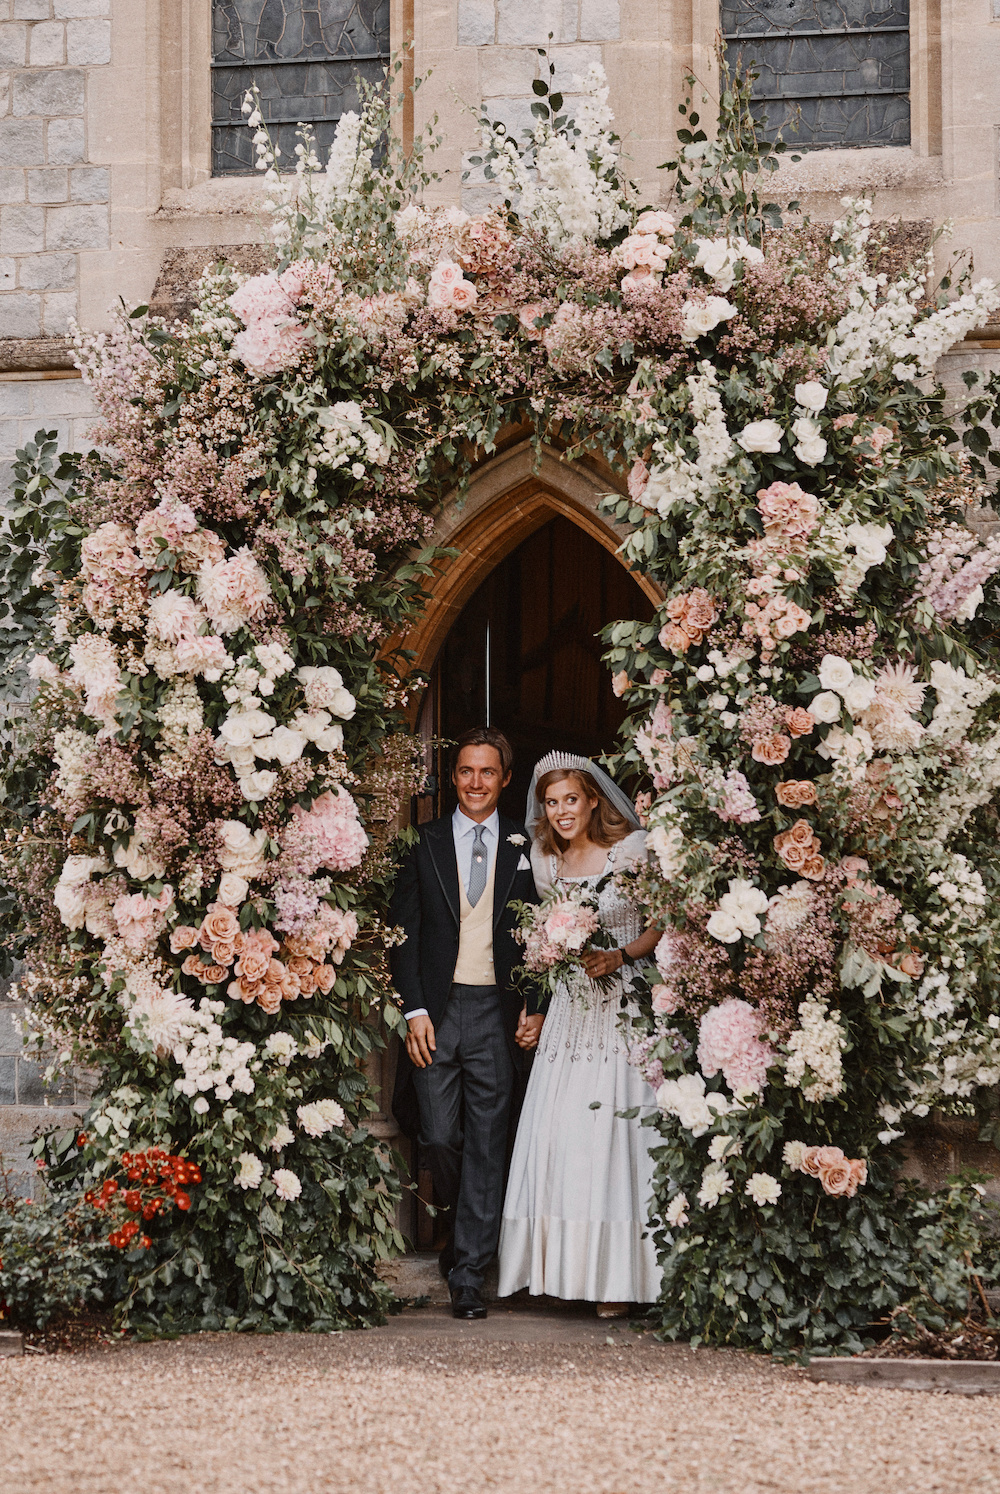 Britain's Princess Beatrice and Edoardo Mapelli Mozzi leave The Royal Chapel of All Saints at Royal Lodge after their wedding, in Windsor, in this official wedding photograph released by the Royal Communications on July 18, 2020. — Benjamin Wheeler/Pool